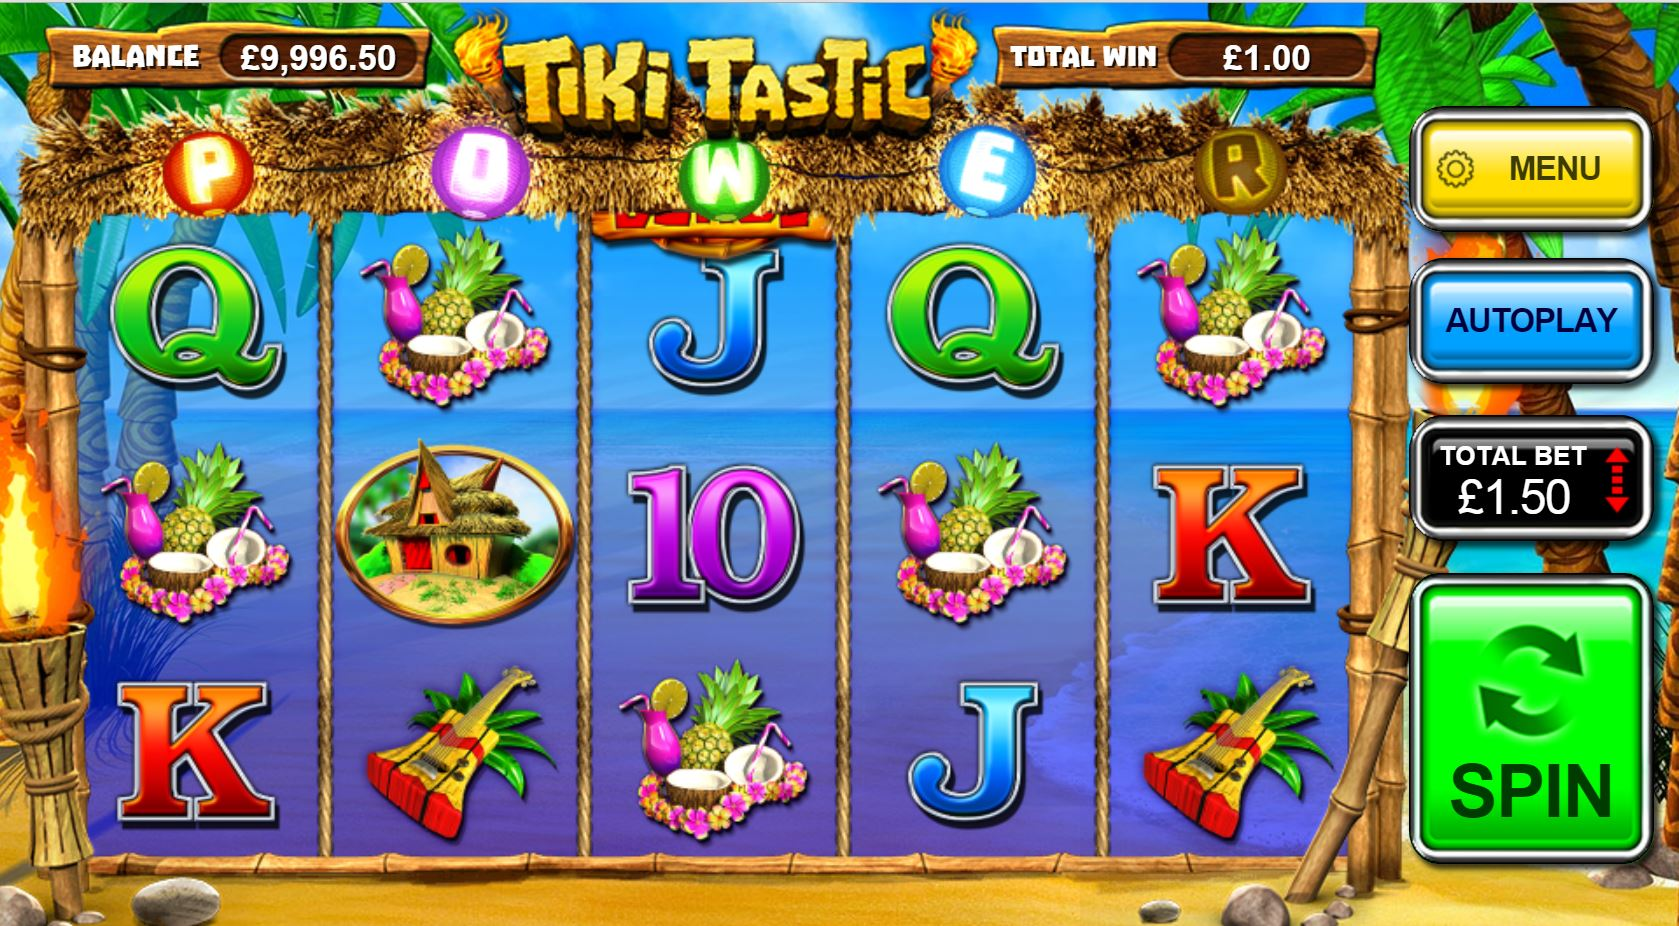 Tiki Tastic Slots - Try your Luck on this Casino Game